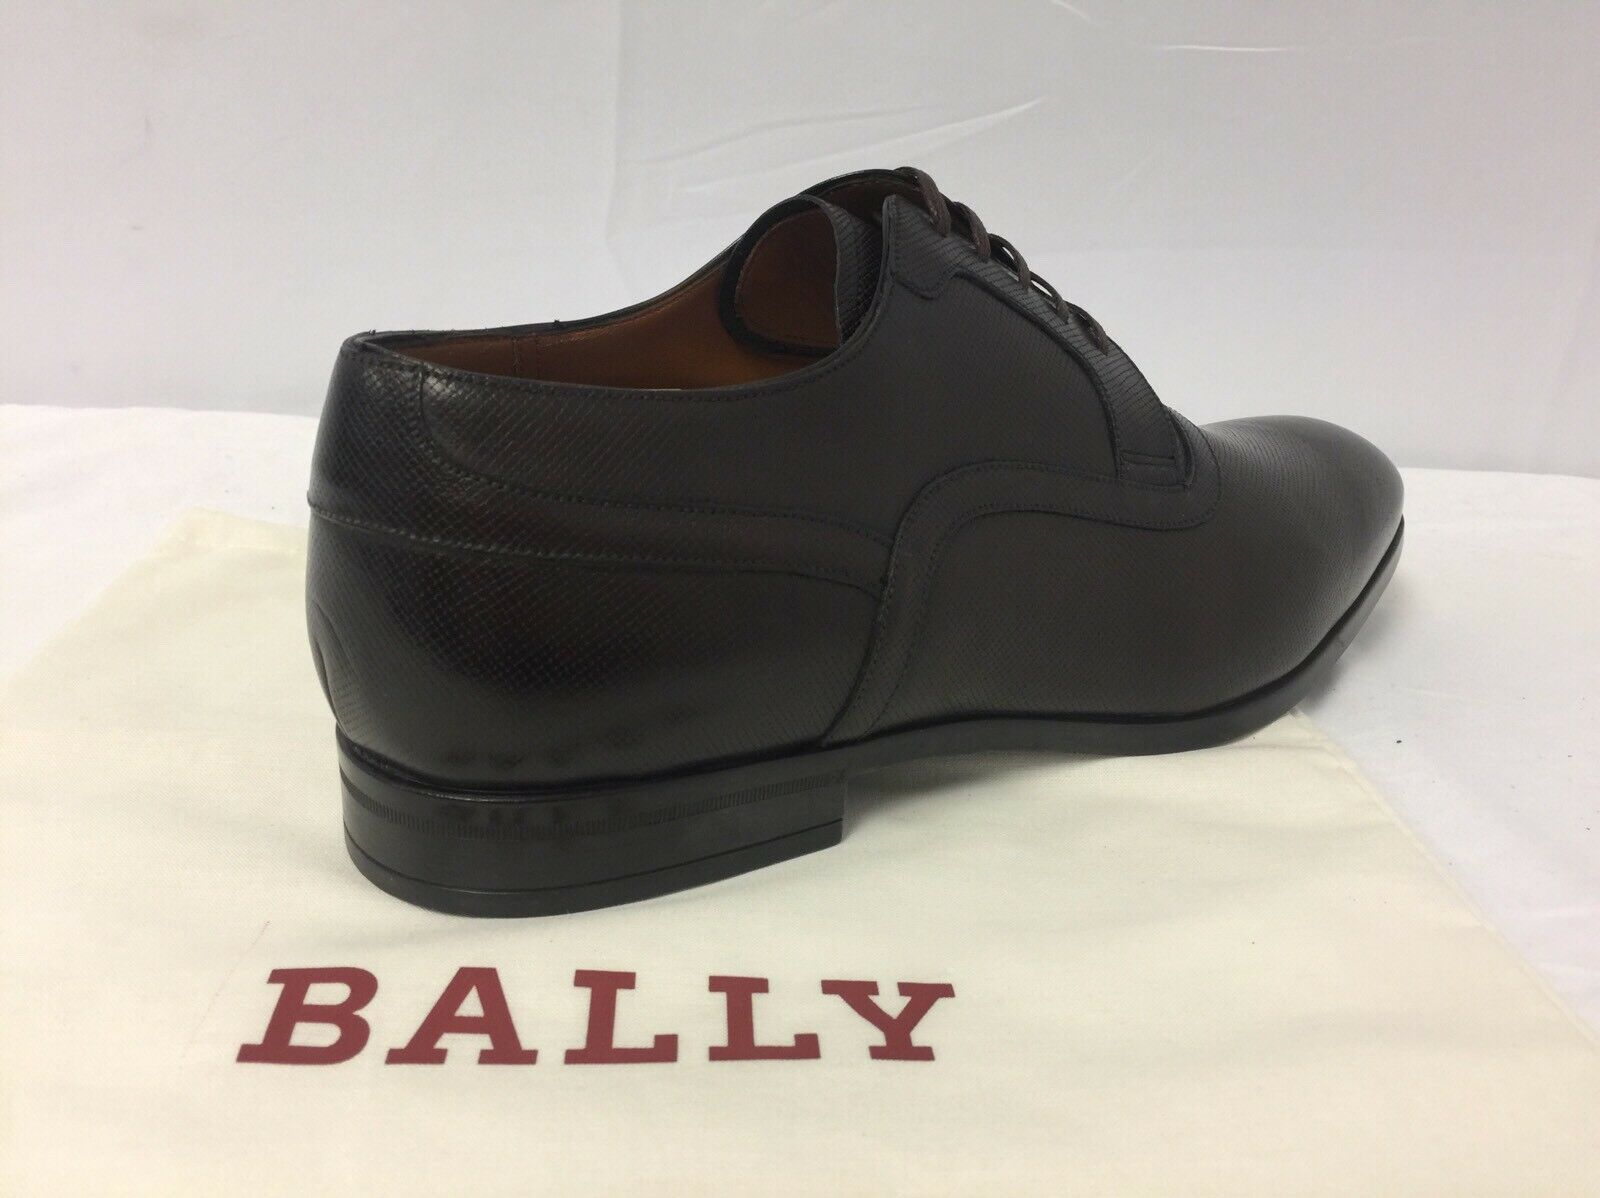 New In Box Box Box Bally 'Lauron' Brown Saffiano Pelle Derby Lace Ups 6.5/7.5  595.00 3633d5